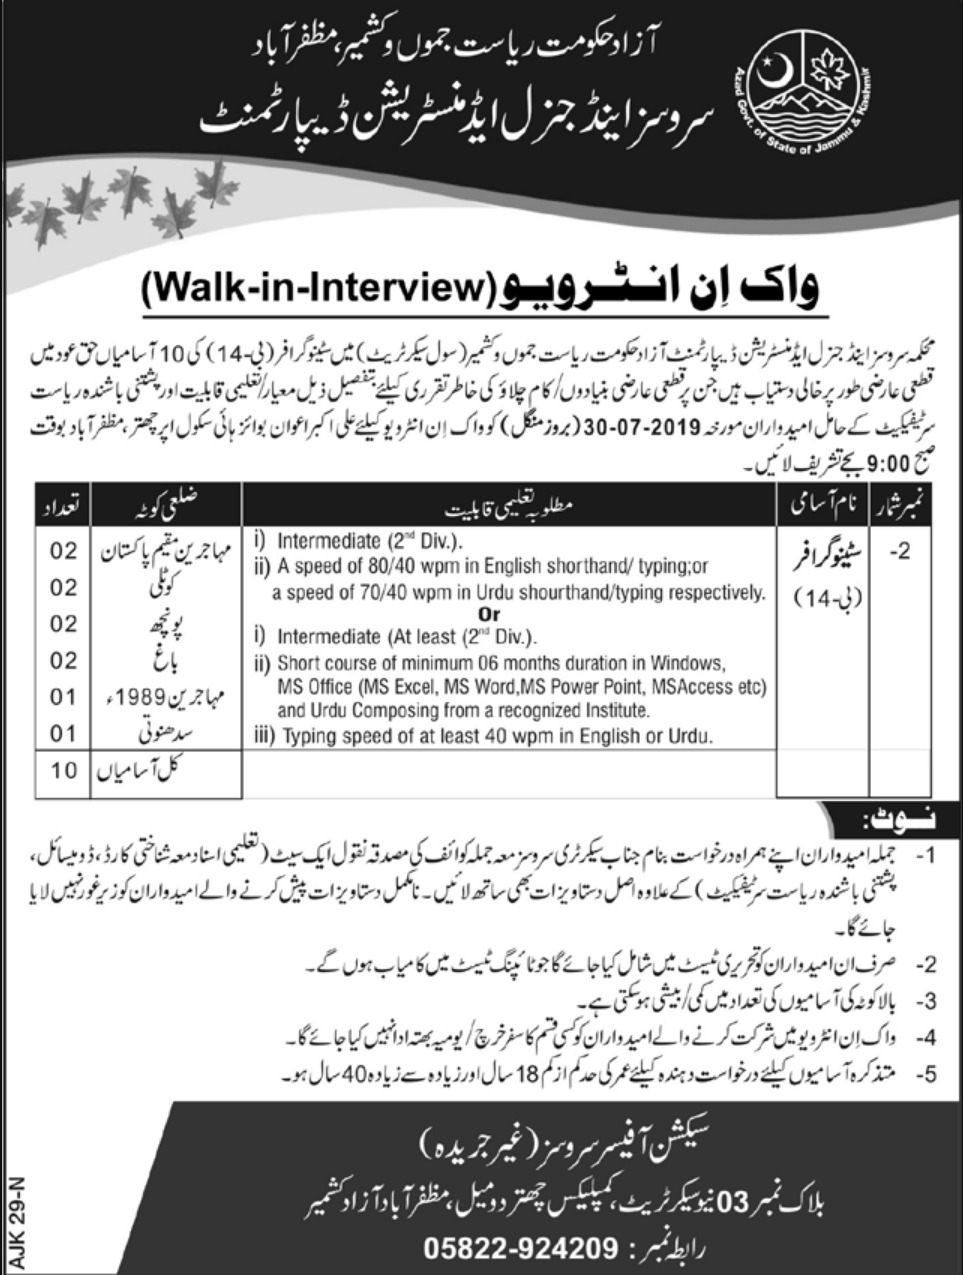 Services & General Administration Department S&GAD AJK Jobs 2019